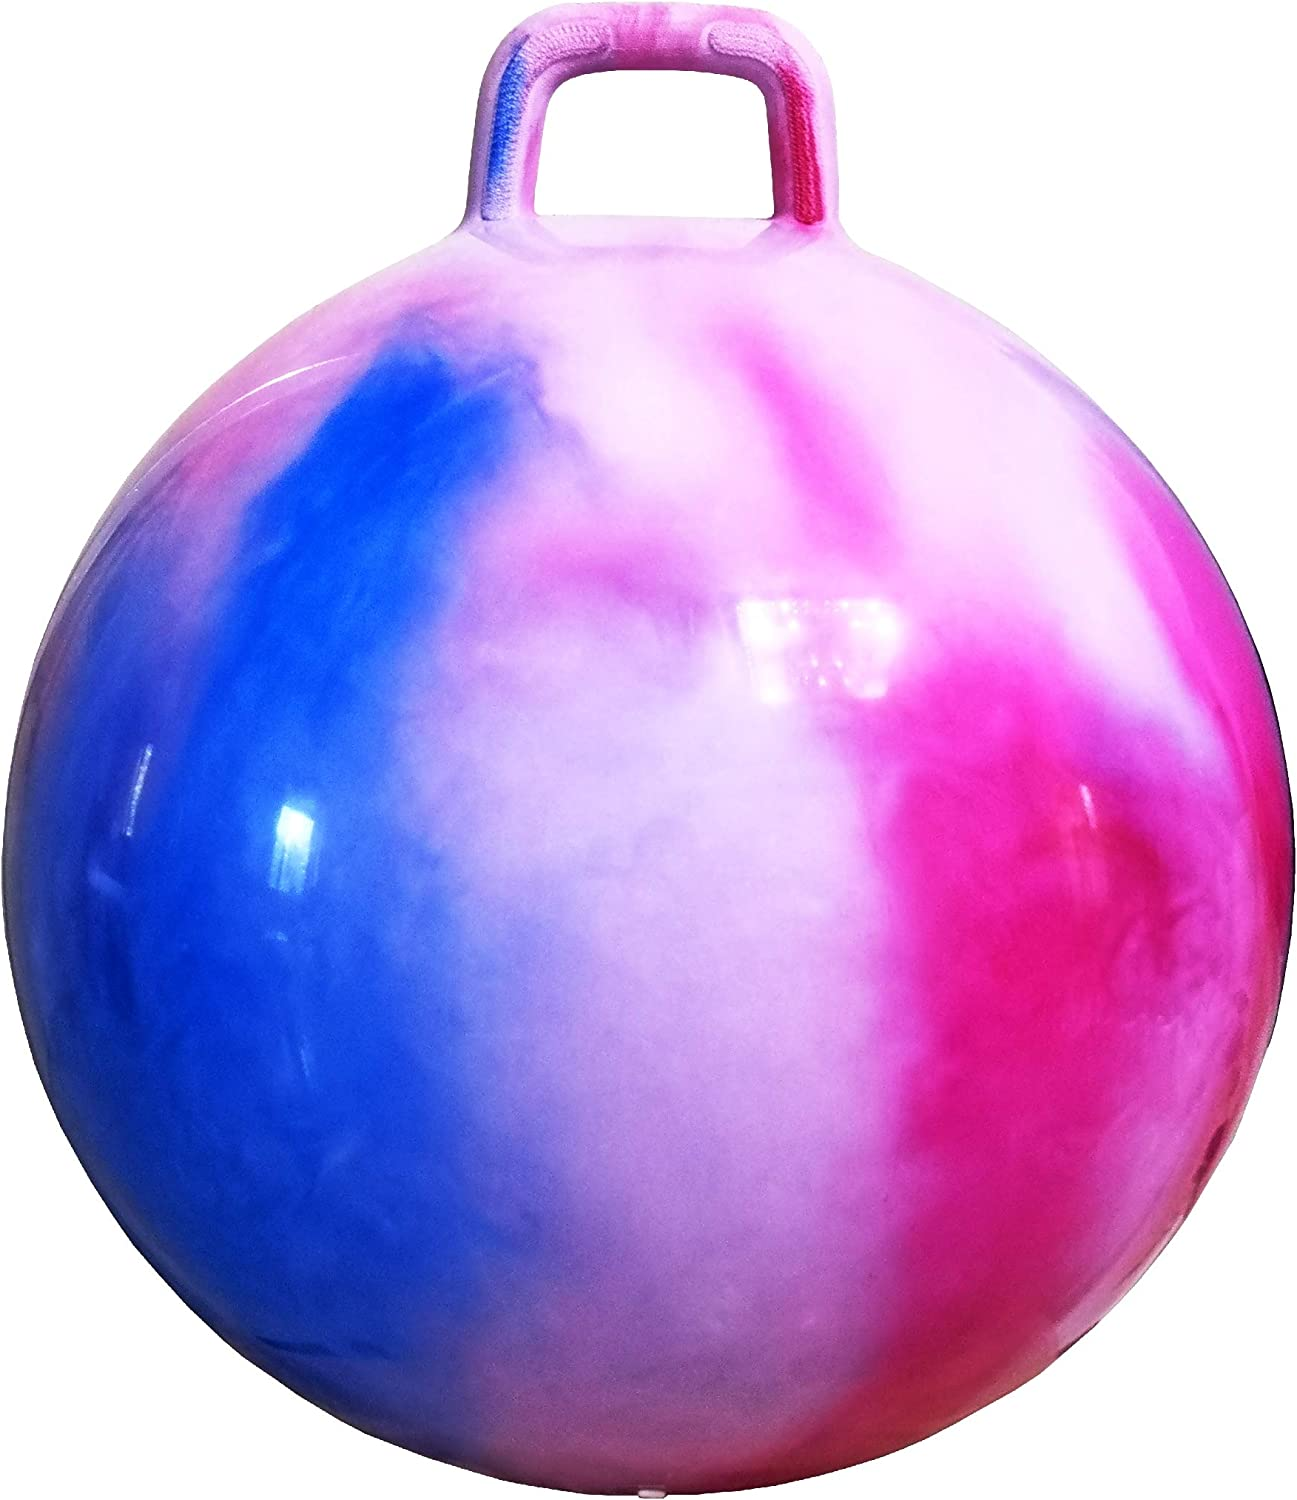 AppleRound Space Hopper Ball with Air Pump: 20in/50cm Diameter for Ages 7-9, Hop Ball, Kangaroo Bouncer, Hoppity Hippity Hop, Jumping Ball, Sit and Bounce